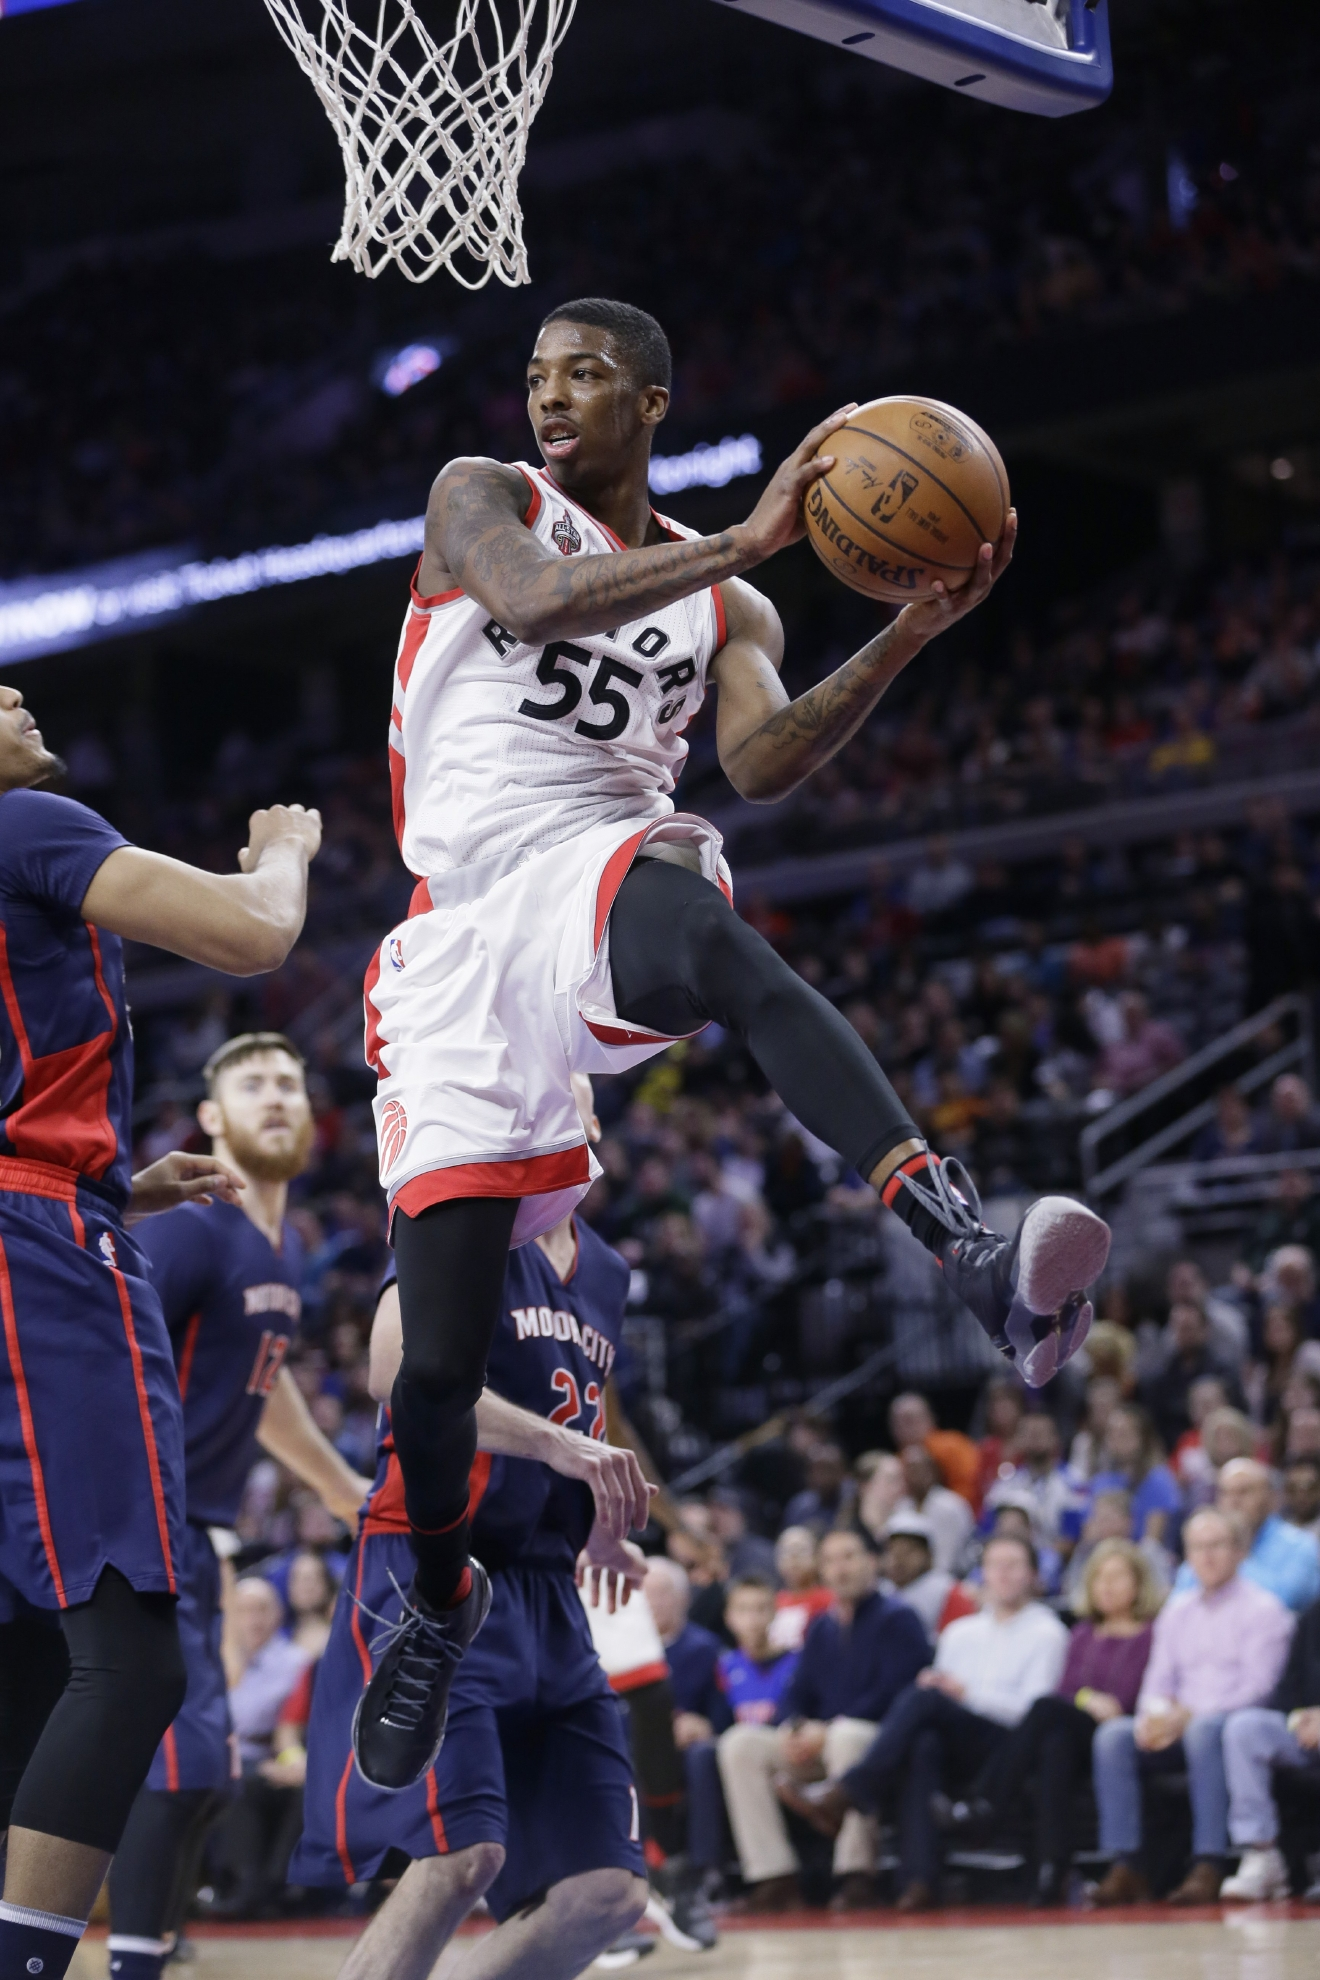 Toronto Raptors guard Delon Wright looks to pass the ball during the first half of an NBA basketball game against the Detroit Pistons, Sunday, Feb. 28, 2016, in Auburn Hills, Mich. (AP Photo/Carlos Osorio)